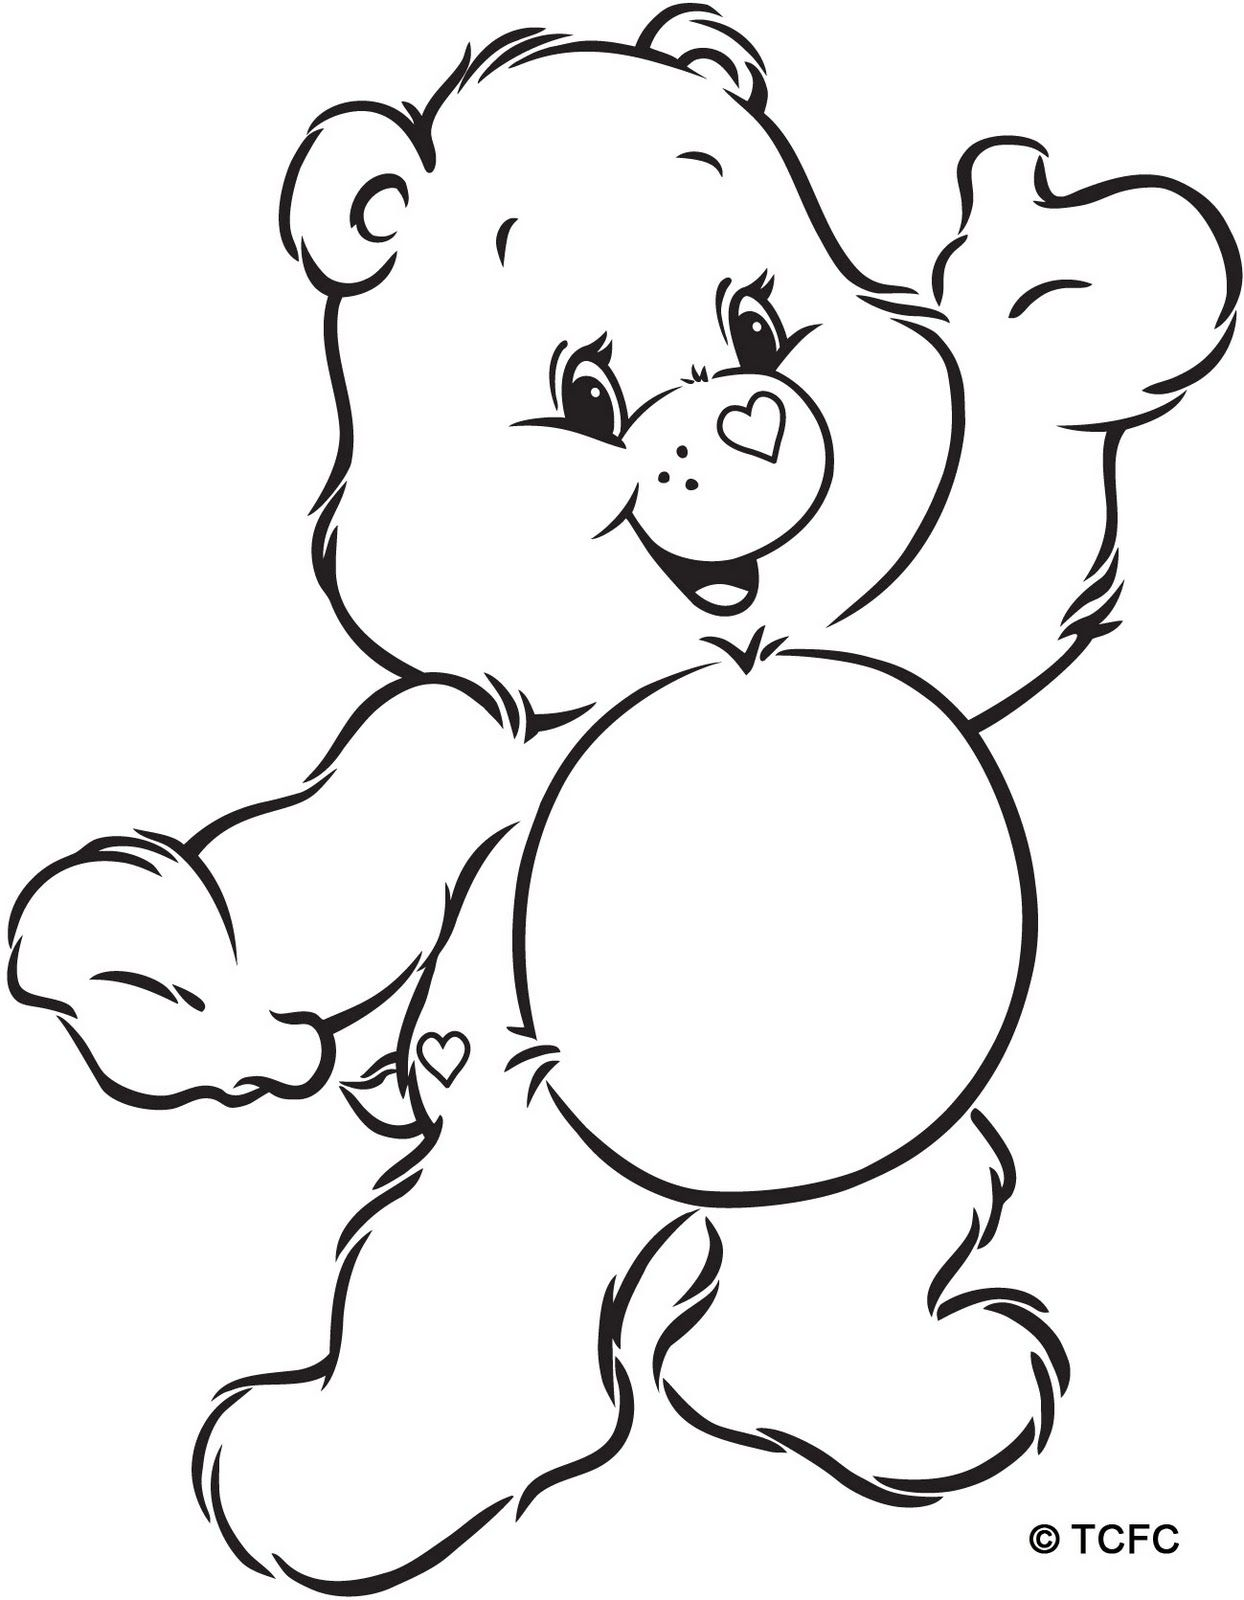 Coloring Pages Design Your Own Care Bearcoloring Bear Free Printables Halloween Fascinating